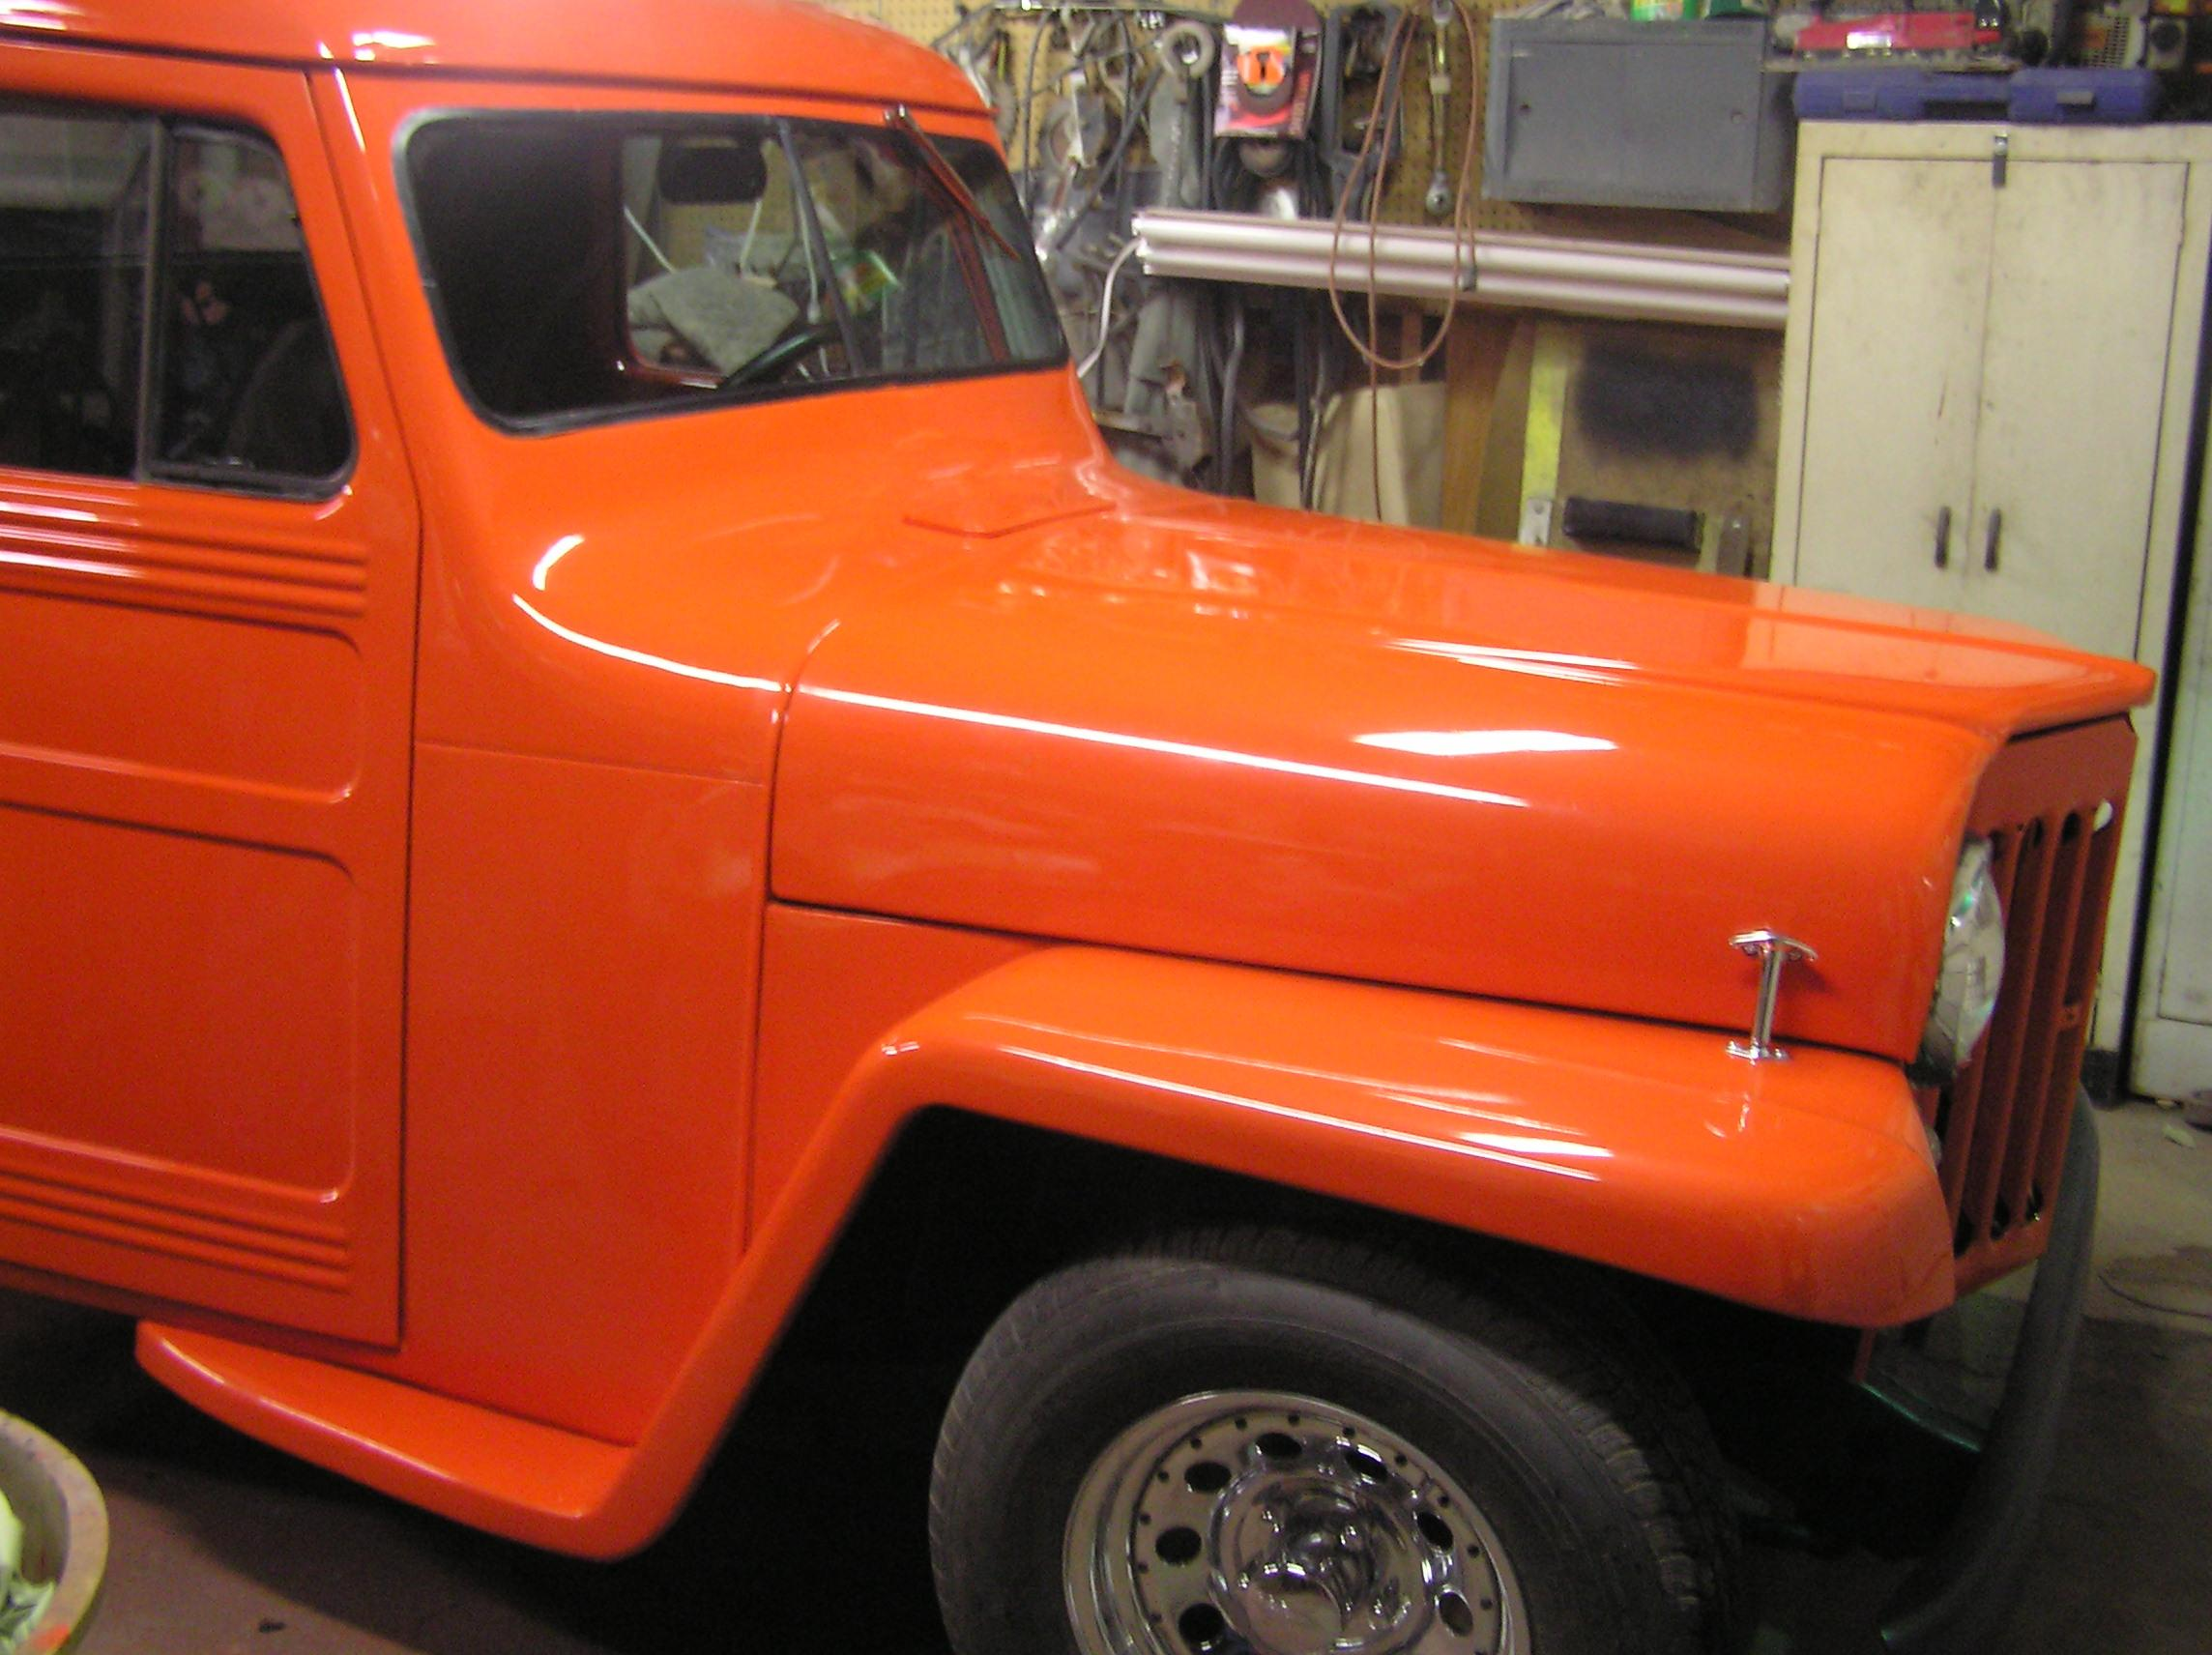 gtomaniac55's 1954 Willys Pickup